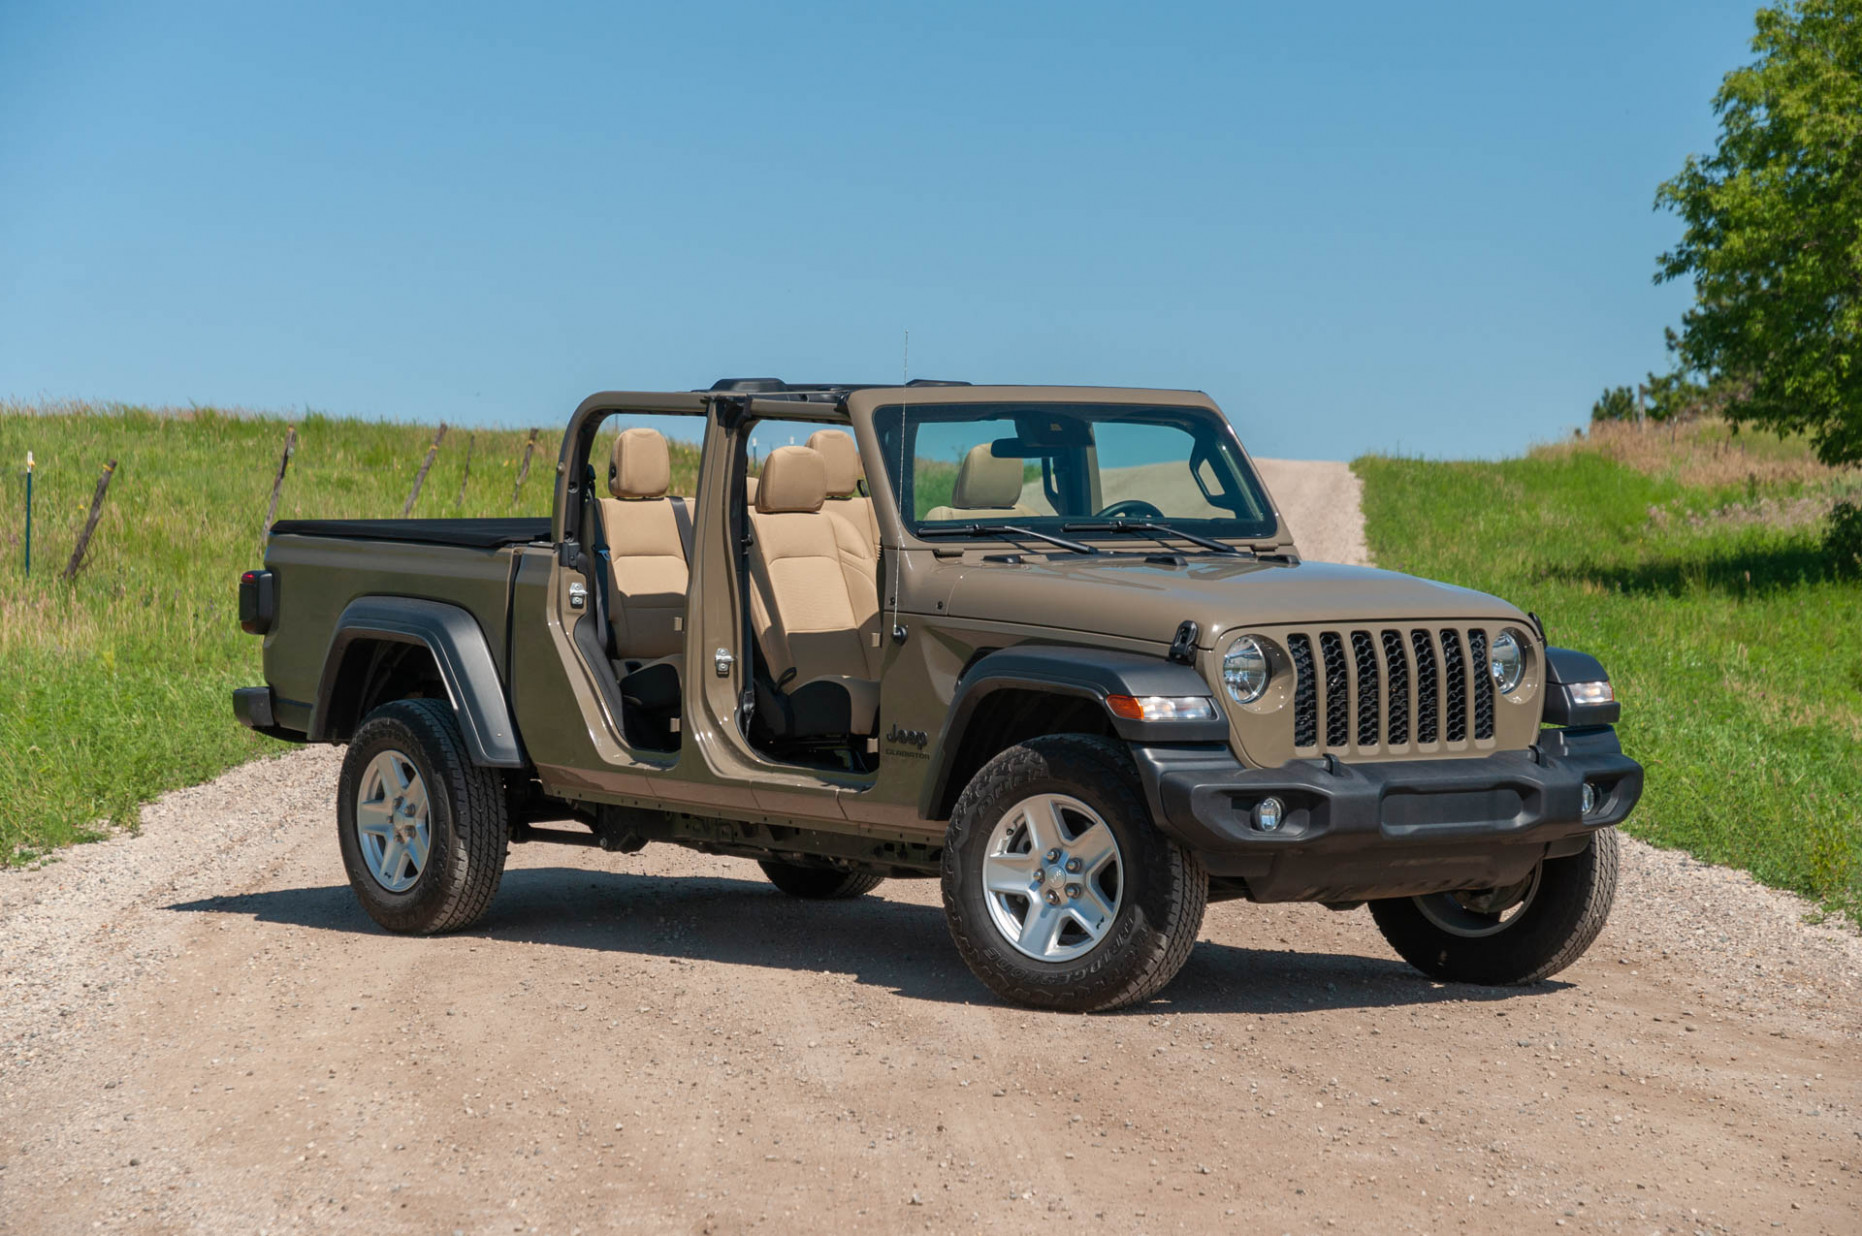 Research New 2022 Jeep Gladiator Overall Length